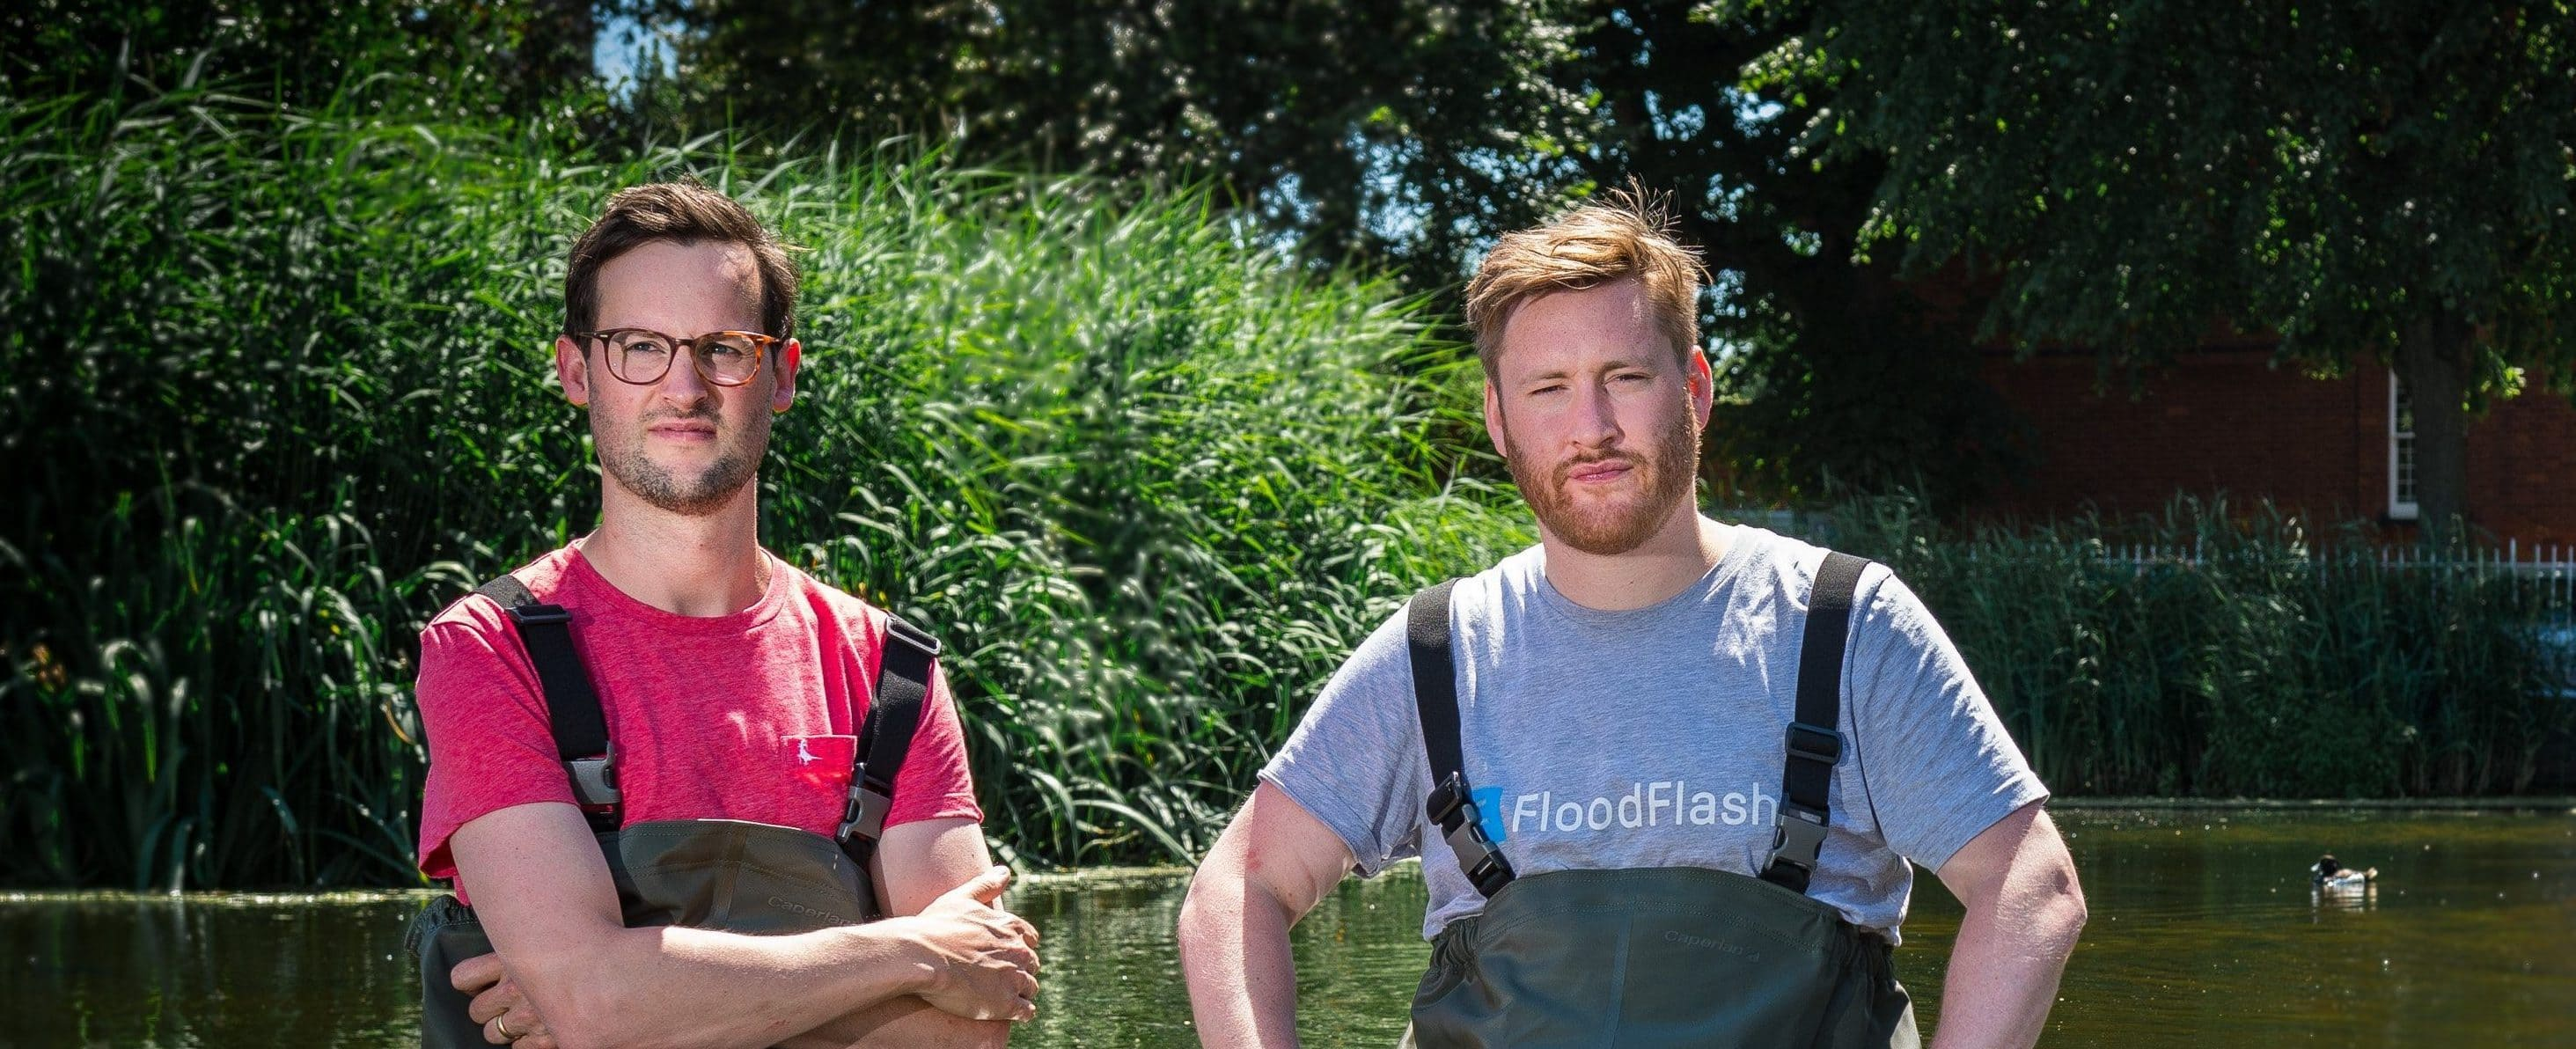 FloodFlash Founders Adam and Ian